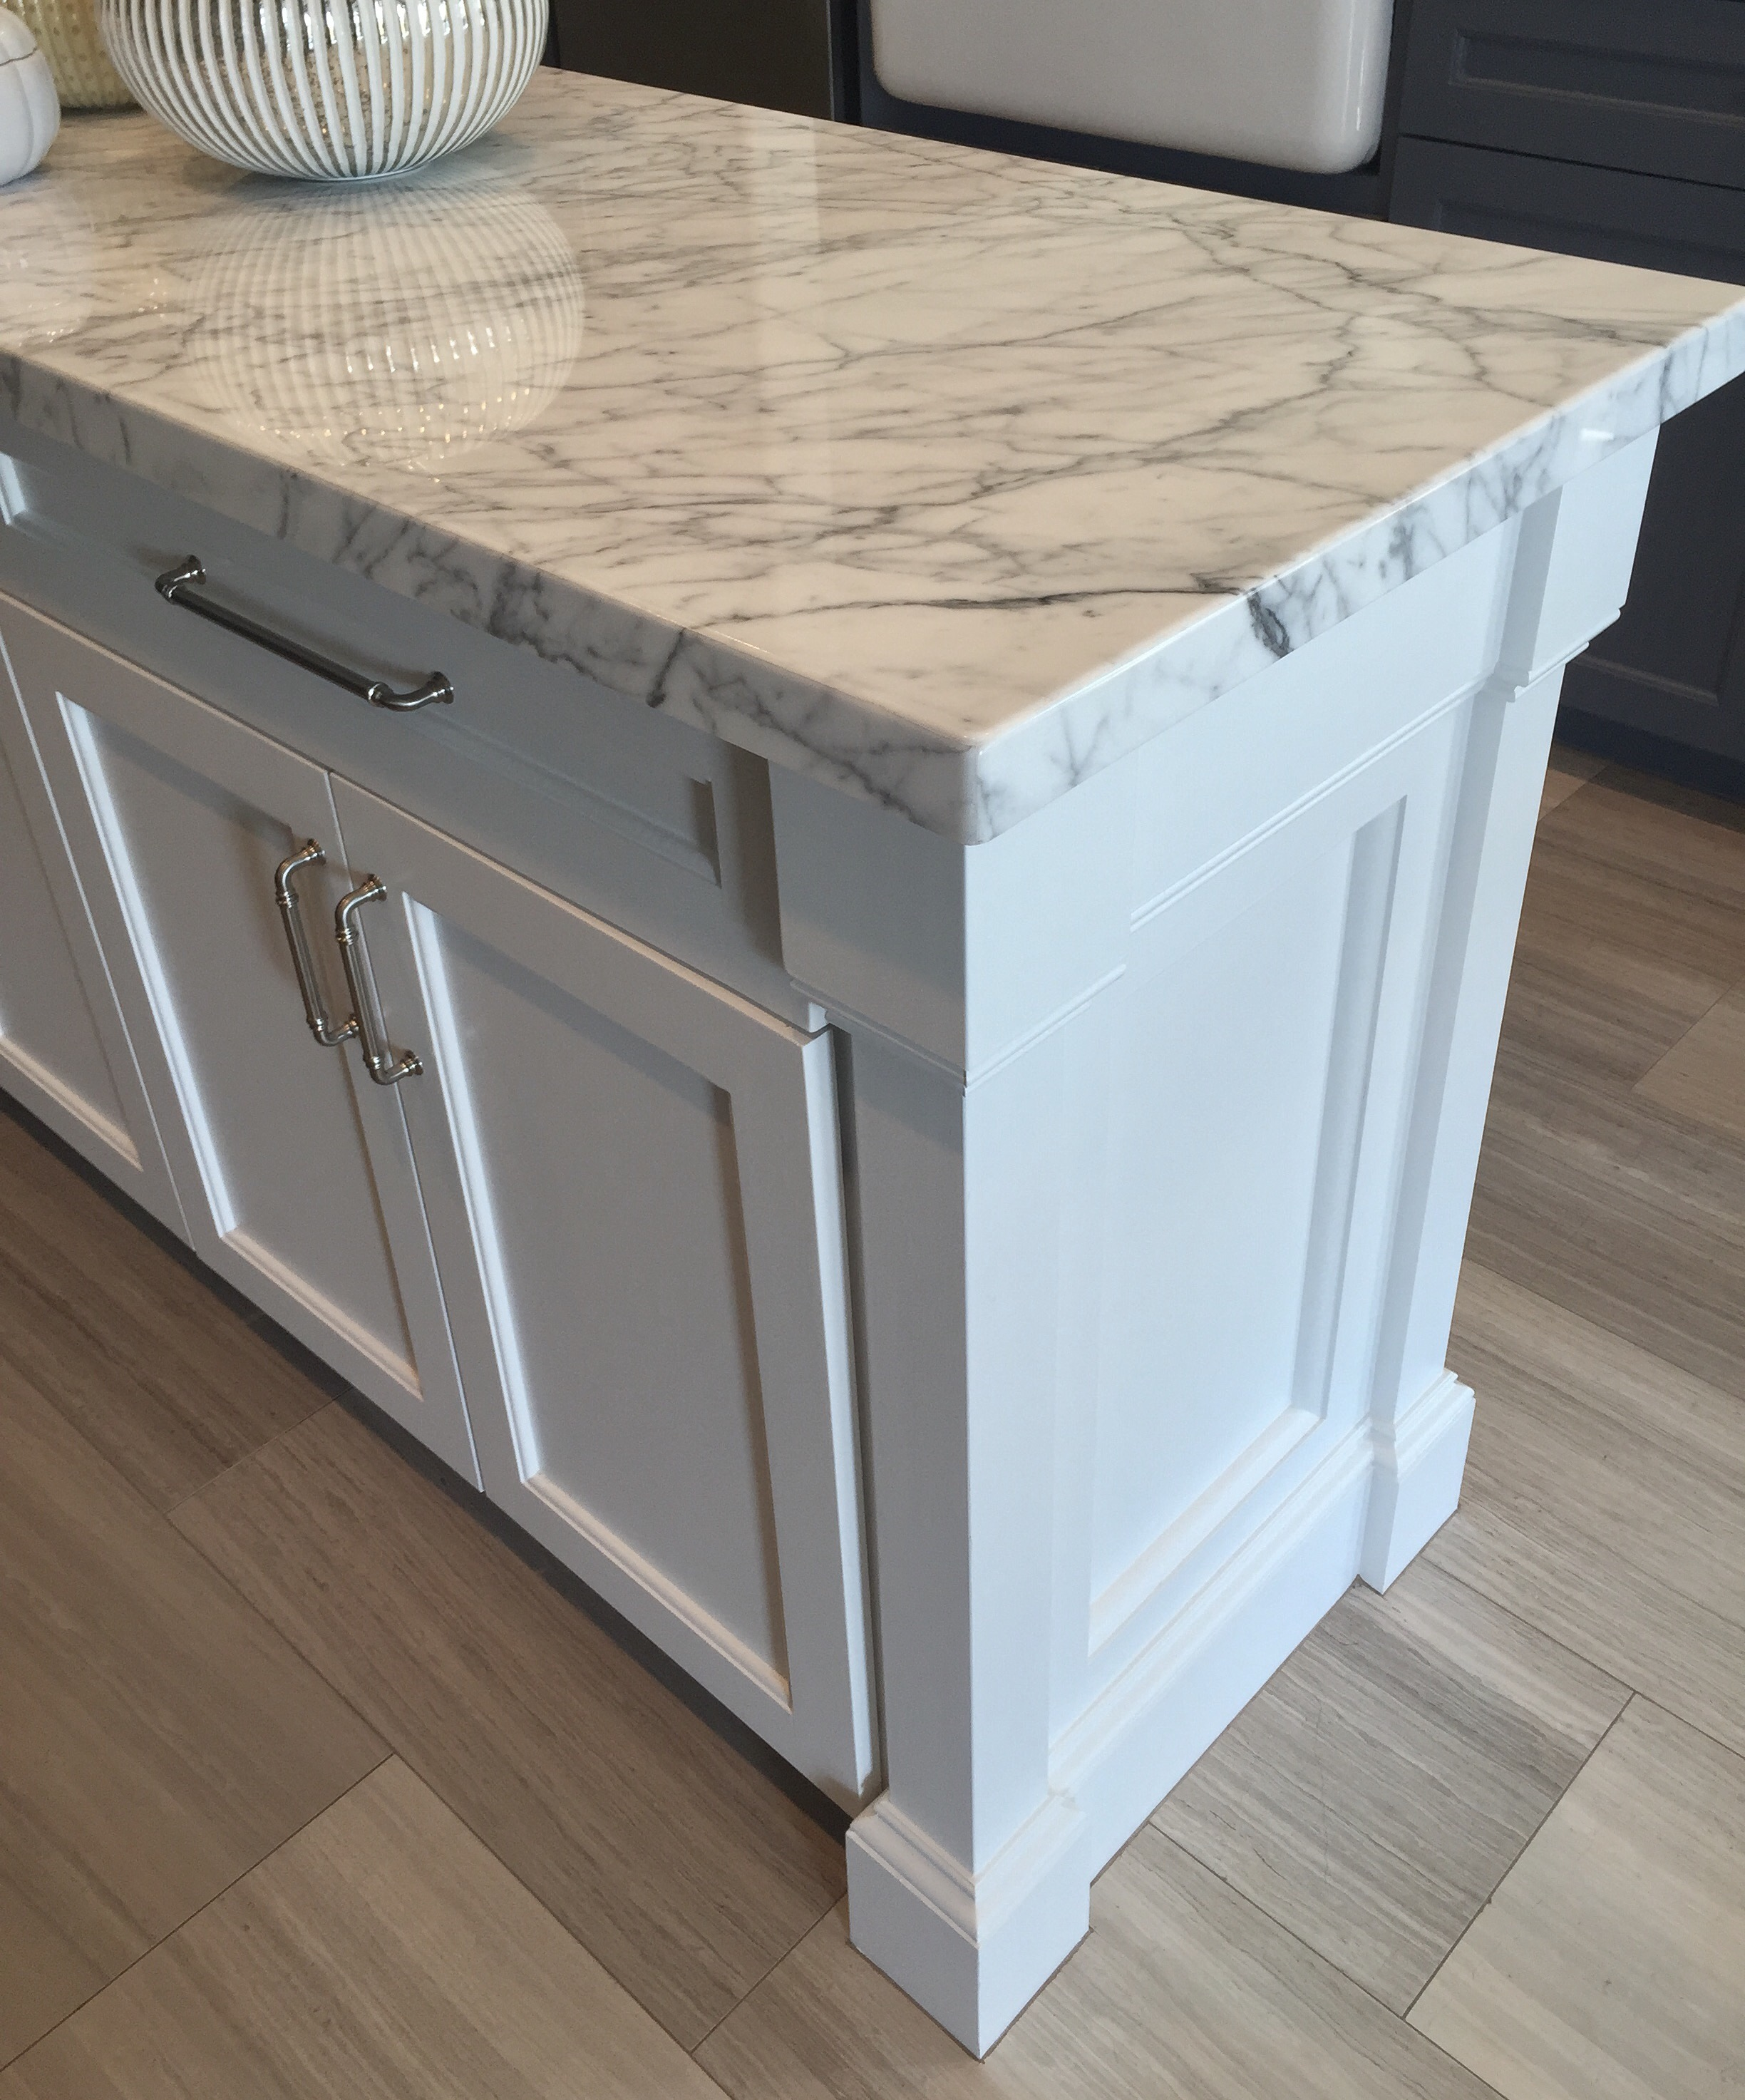 The Scoop On Natural Stone Countertops For Your Kitchen Designed